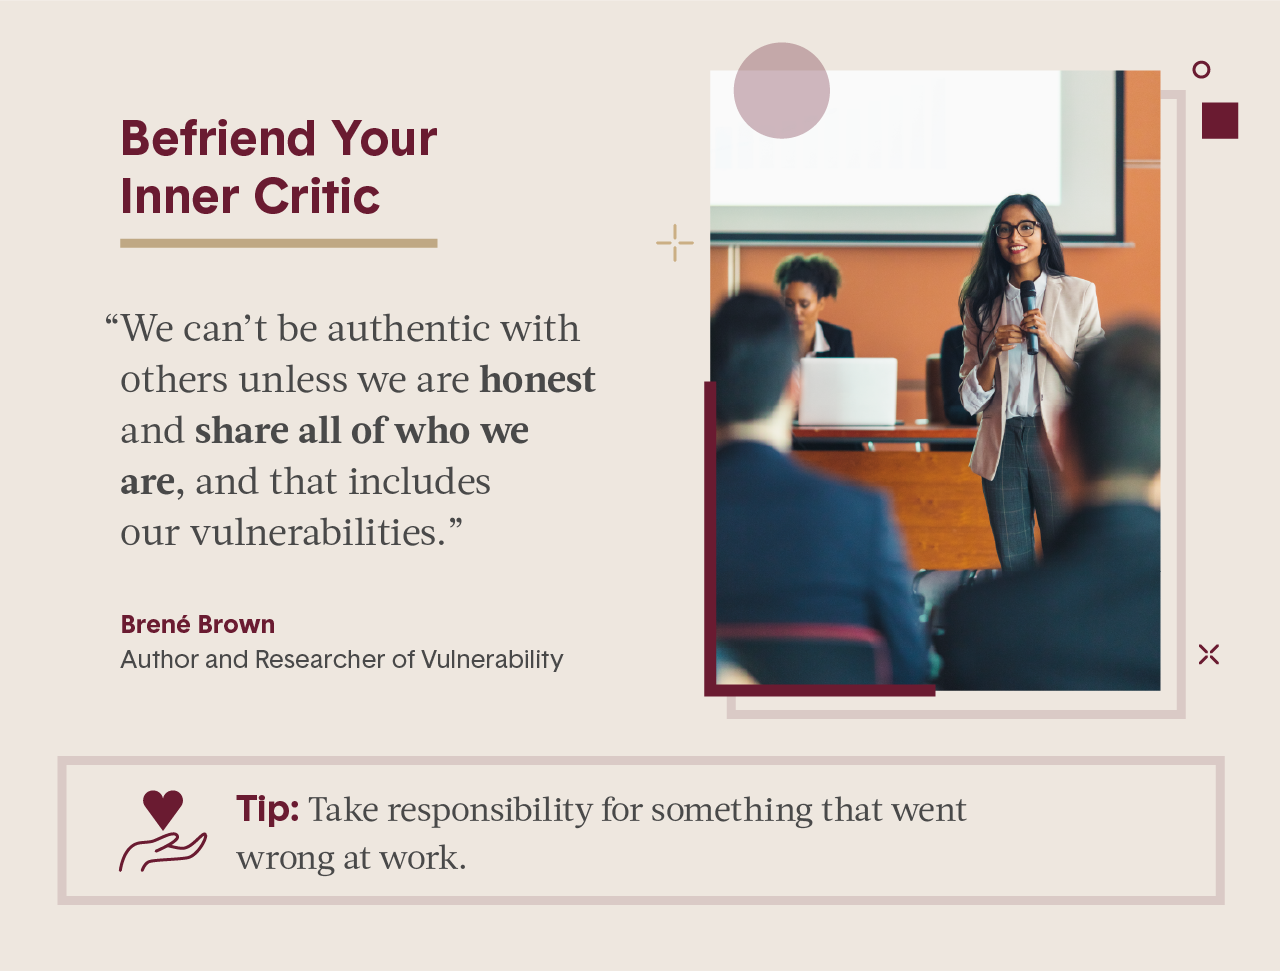 Pink square visual including quote from female expert in business and photo of women holding microphone and giving presentation